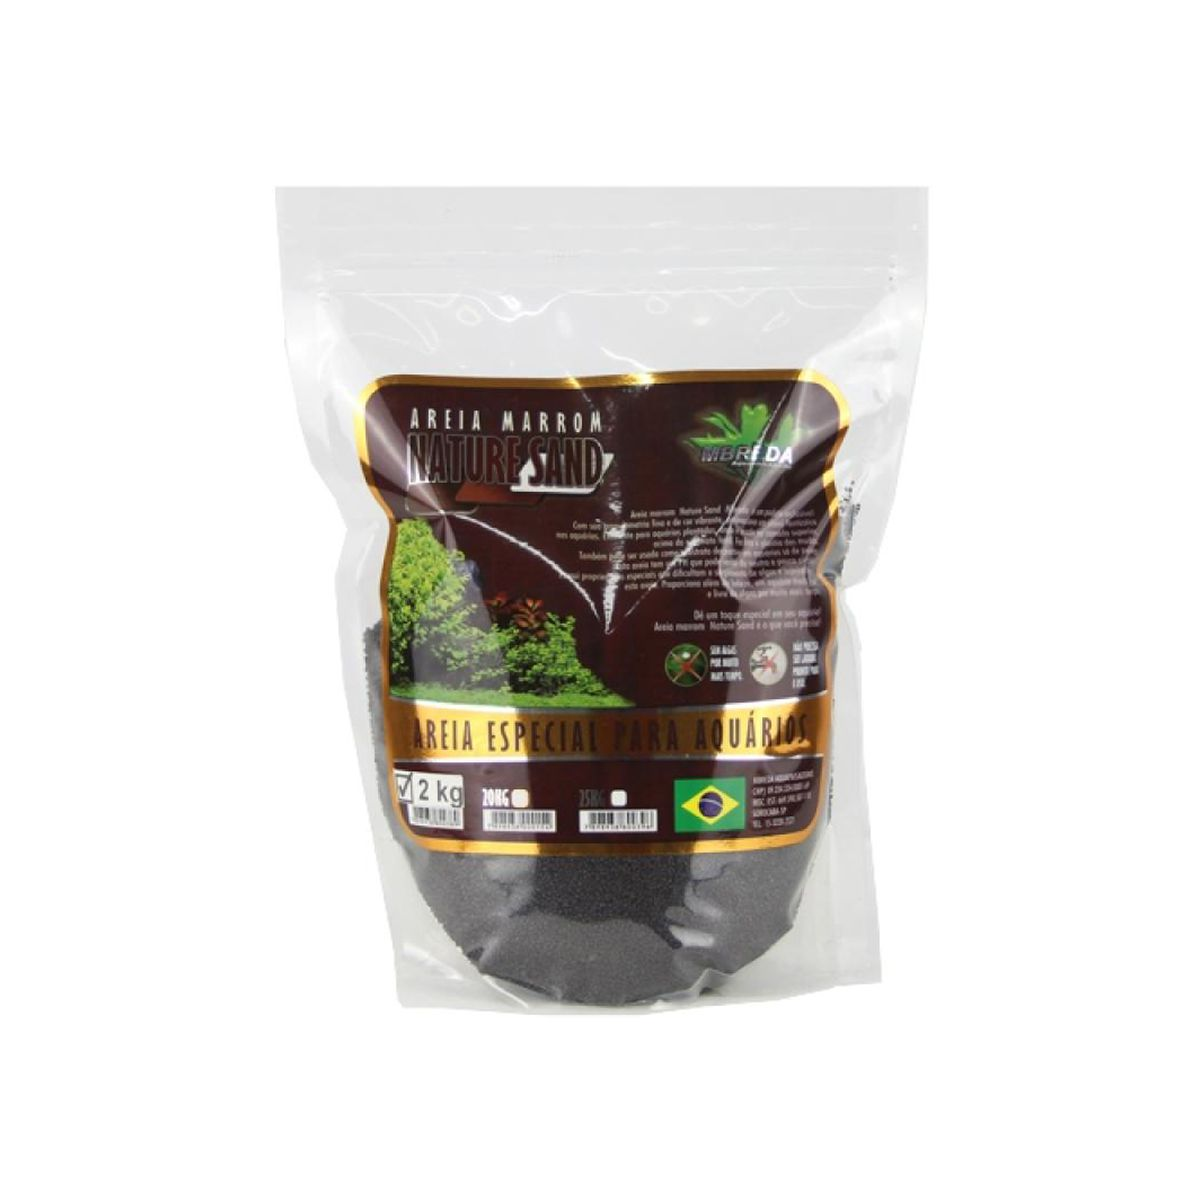 Mbreda Areia Nature Sand 2kg Stand Up Pouch Substrato Inerte